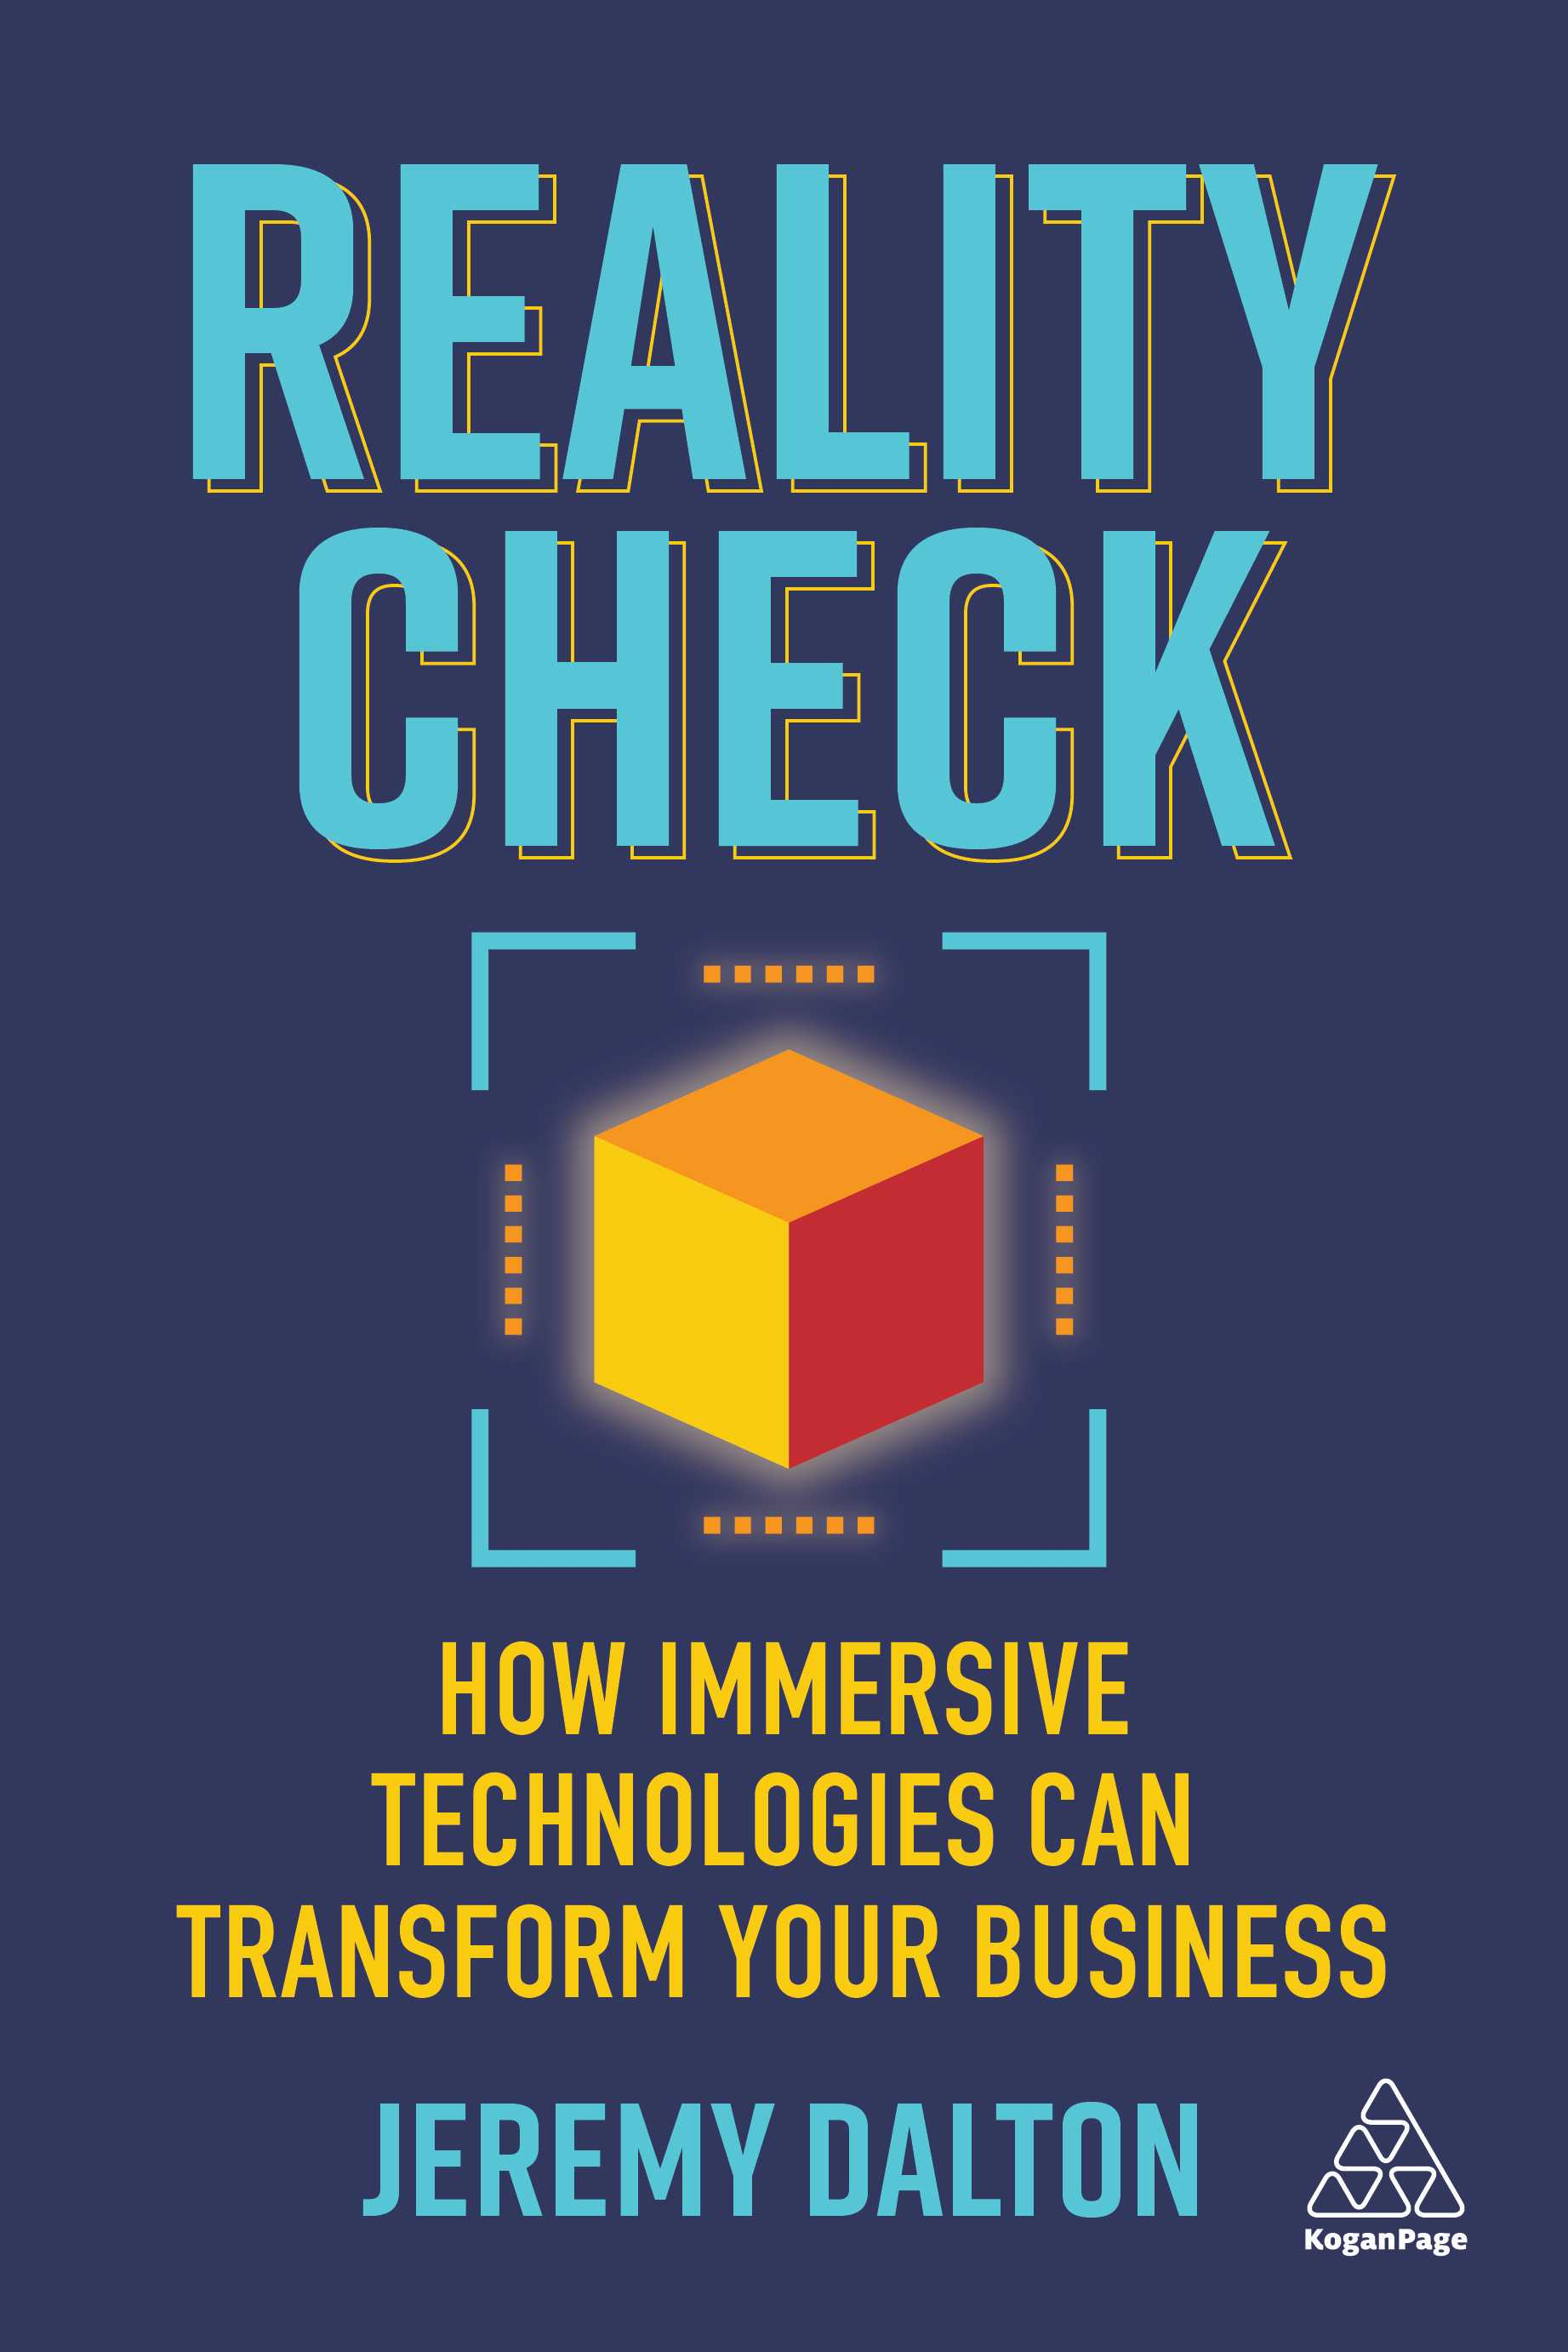 The cover of the book, Reality Check, by Jeremy Dalton